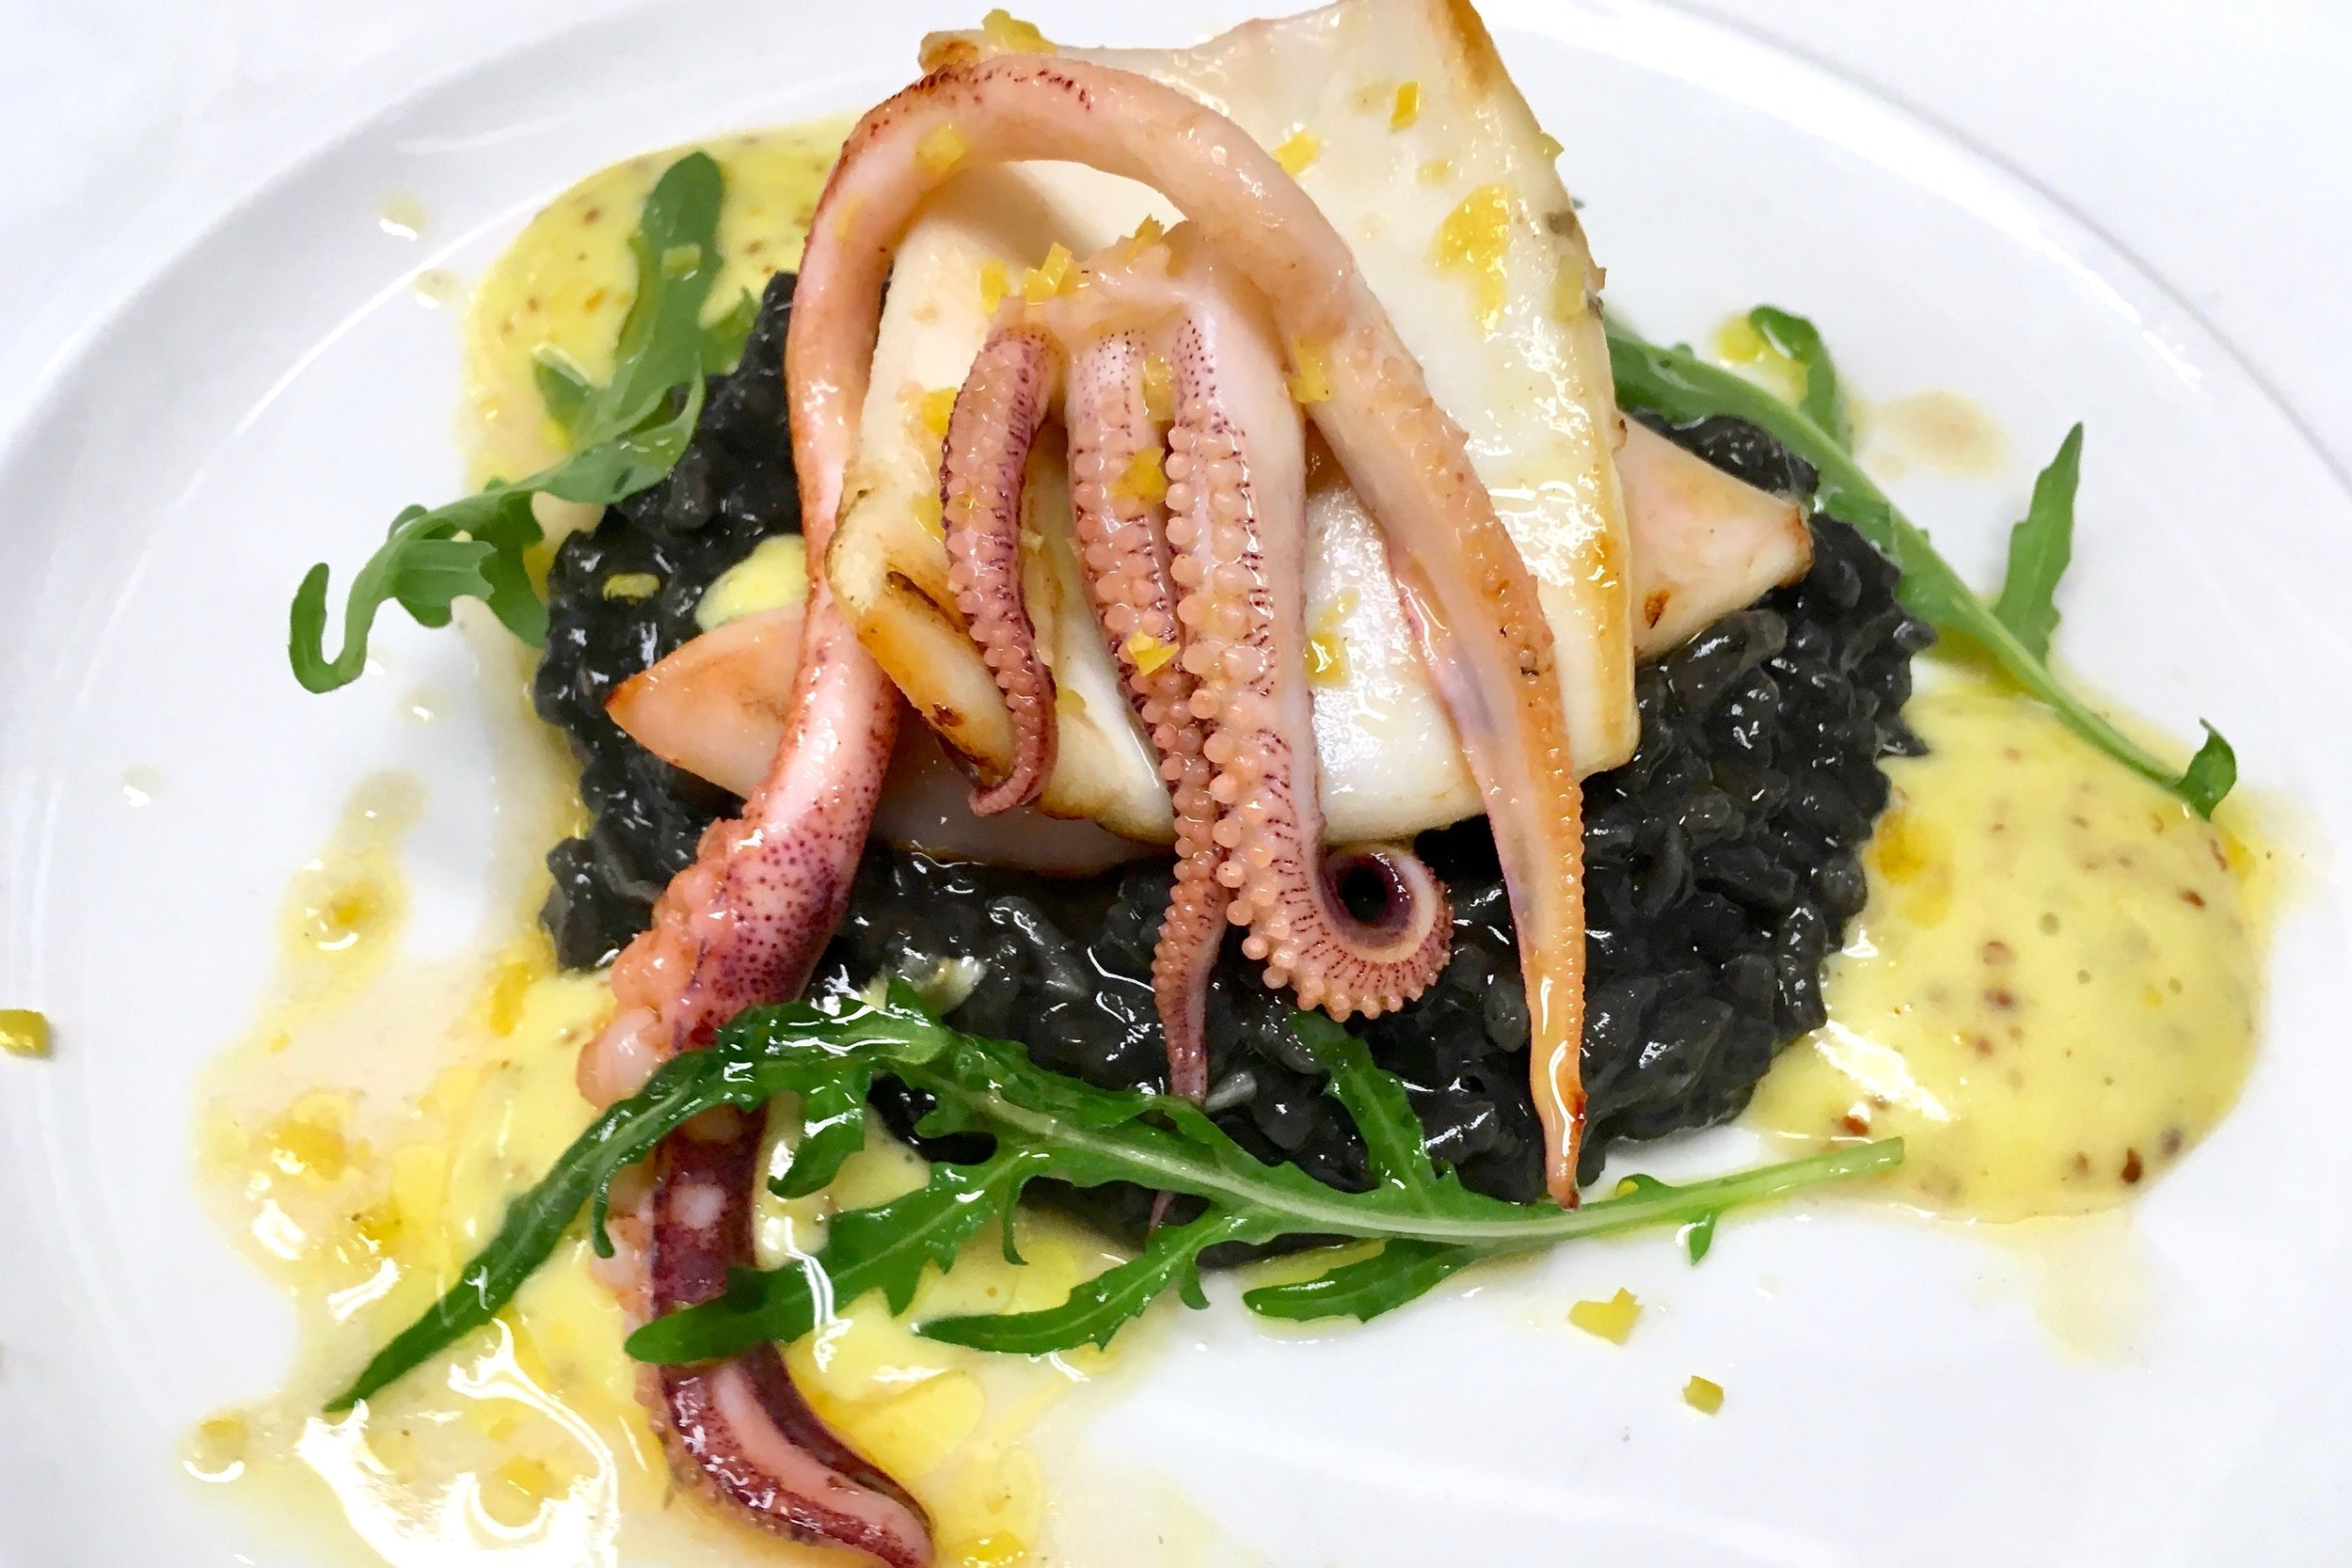 Squid ink risotto with marinated squid and a mustard emulsion